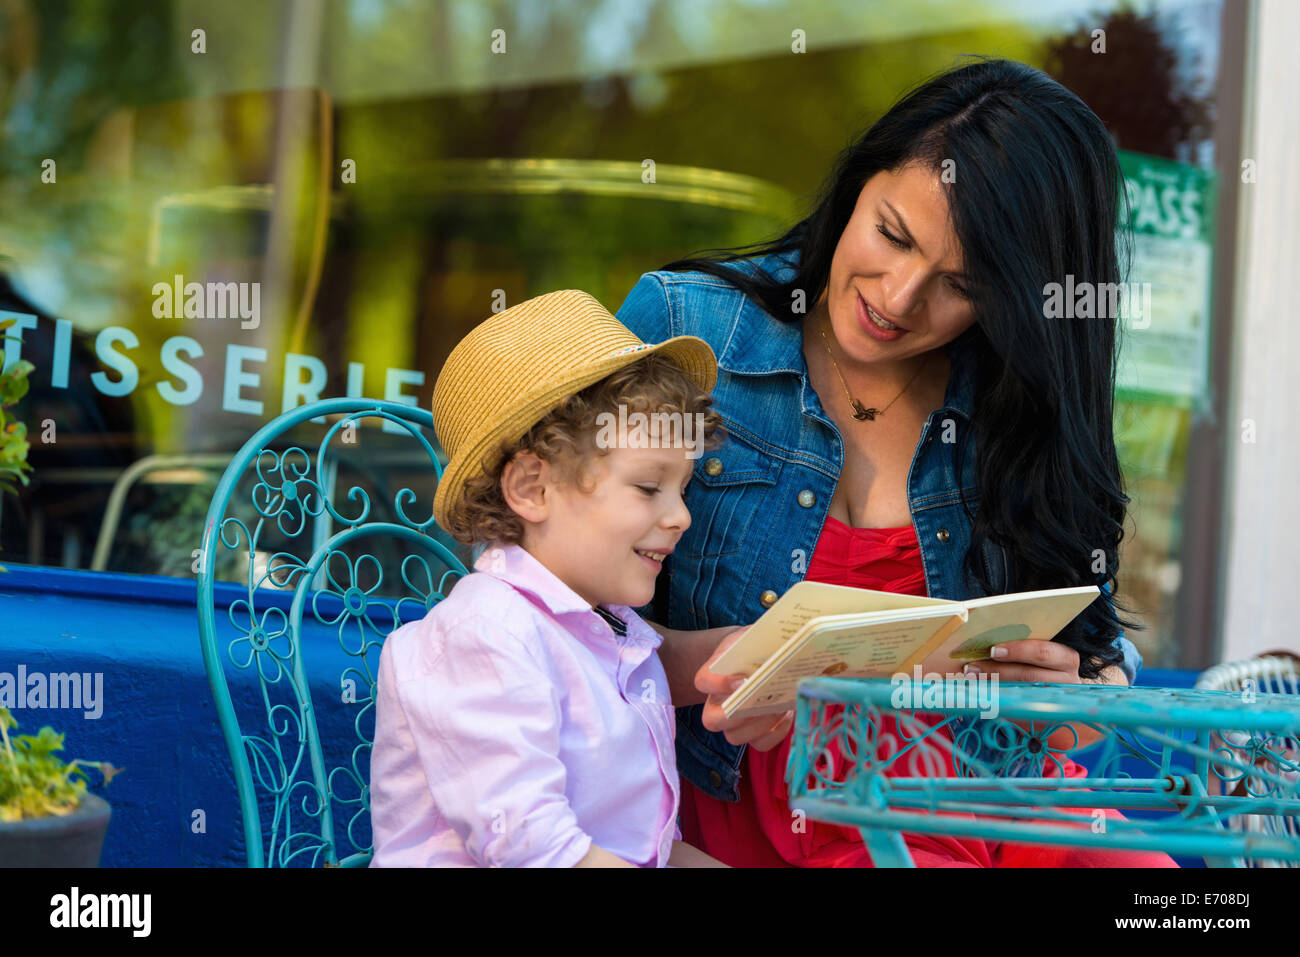 Young mother reading story book with son at sidewalk cafe - Stock Image